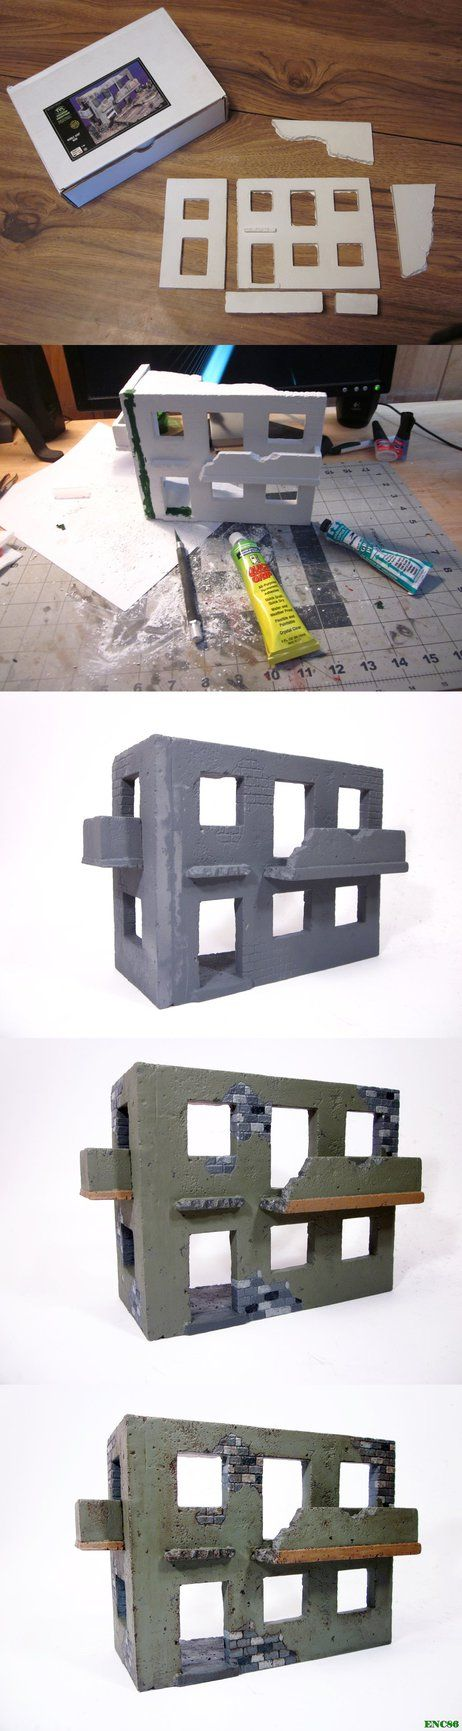 """Here is a couple days worth of work on a 1/35 ruined building for an upcoming diorama. The building is from """"Verlinden"""" and made out of plaster. While the kit is nice it does have a few draw backs ..."""